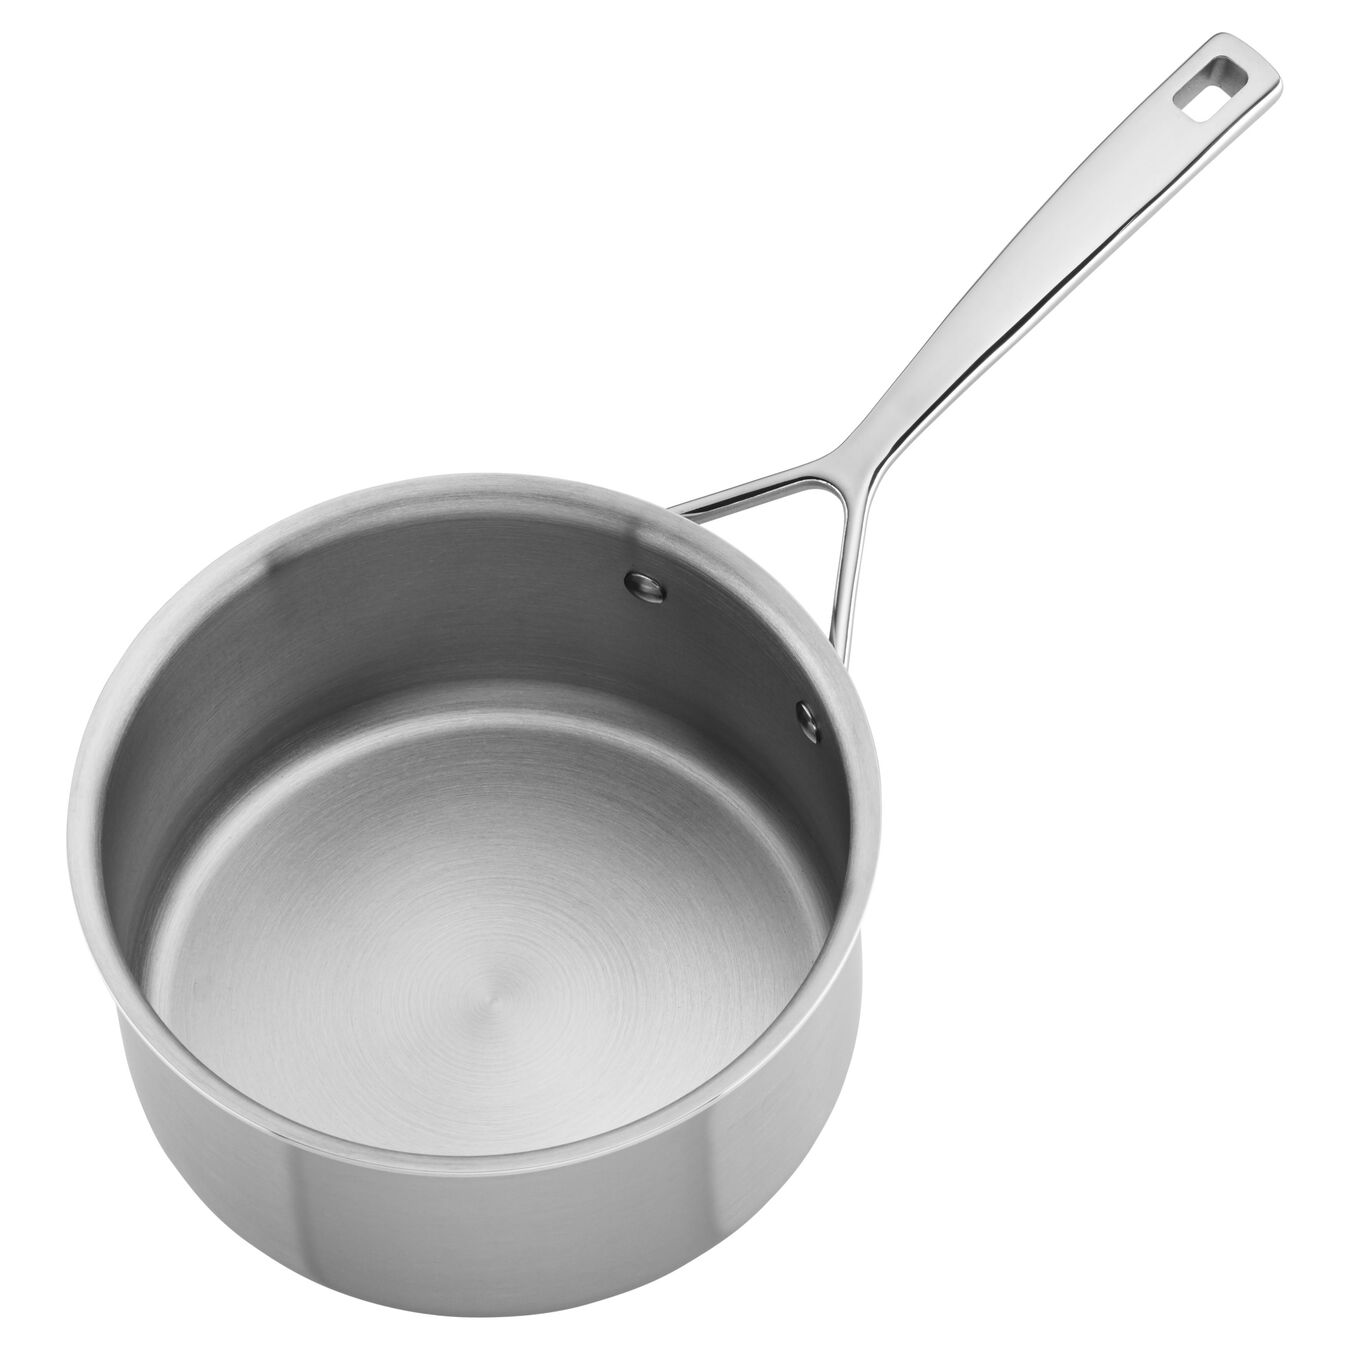 1.5 L 18/10 STAINLESS STEEL SAUCE PAN WITH LID,,large 4